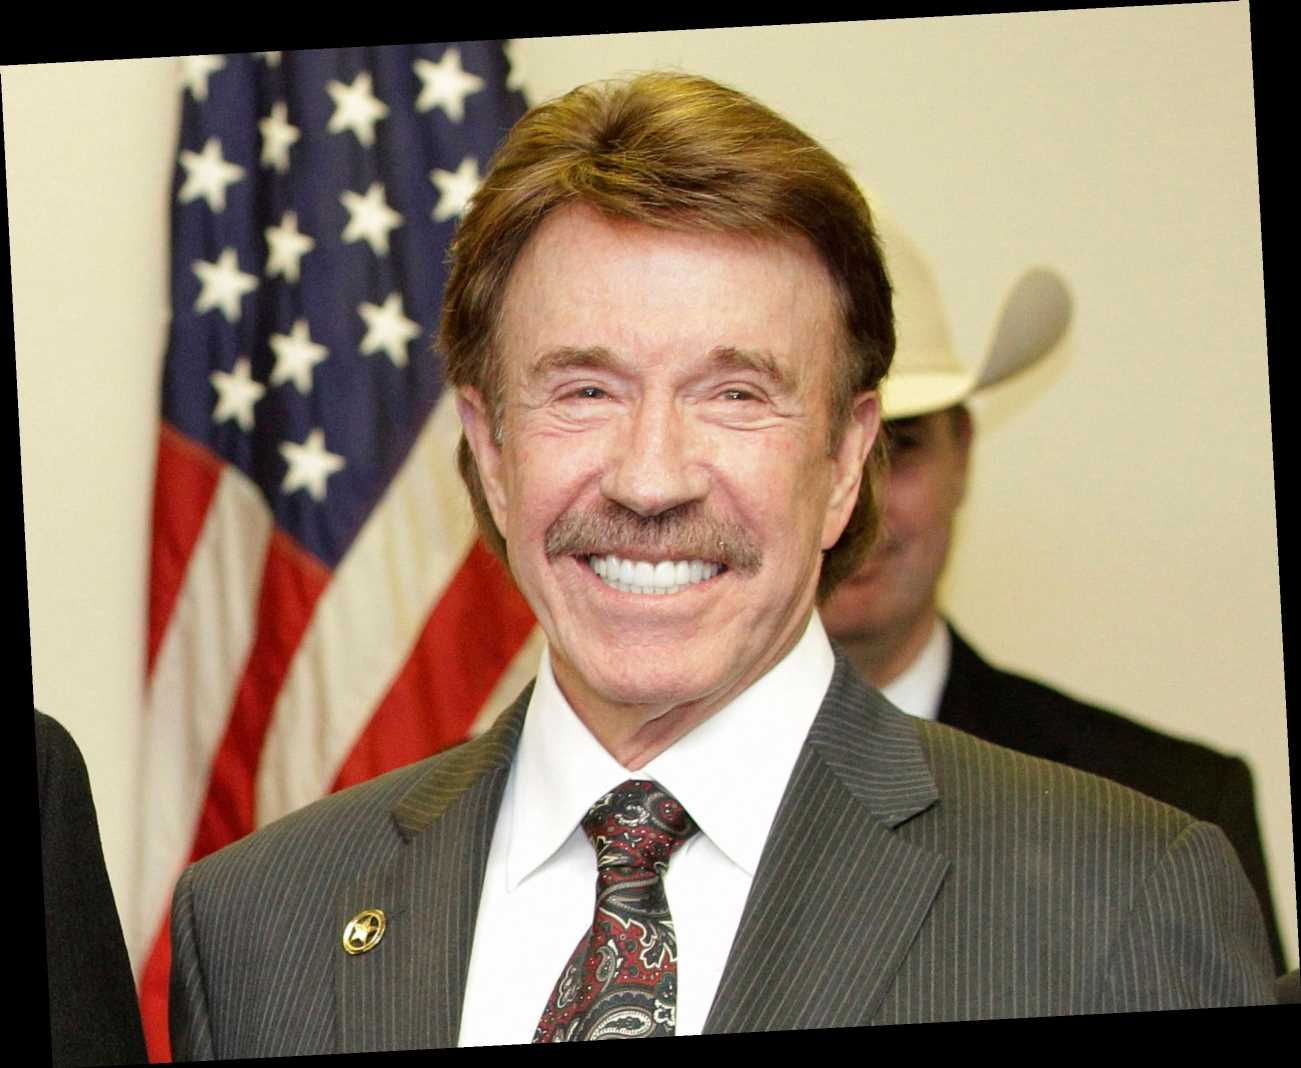 Chuck Norris Denies Being At U.S. Capitol For Insurrection